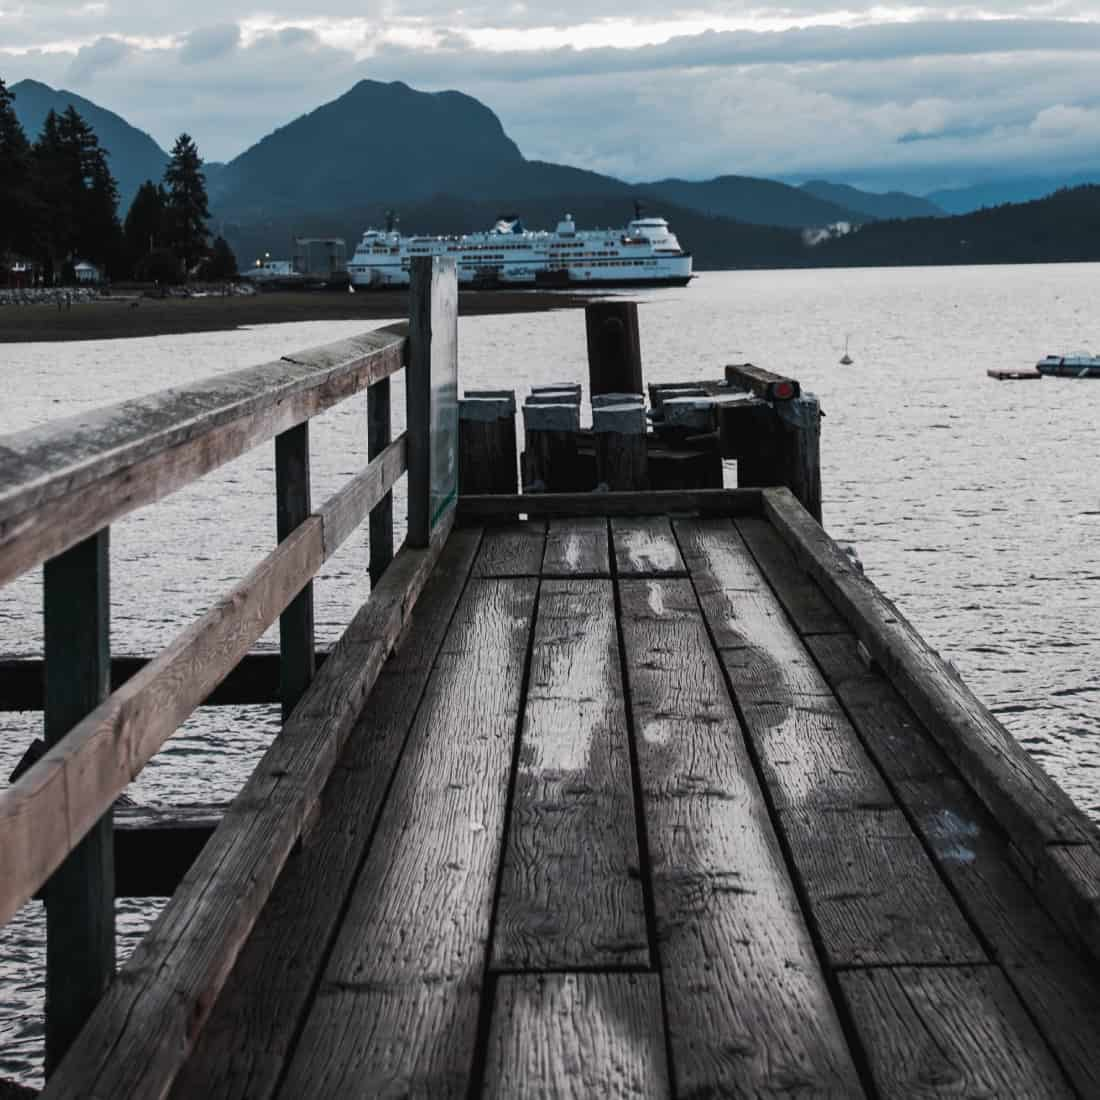 Watching a ferry from a dock on Vancouver Island